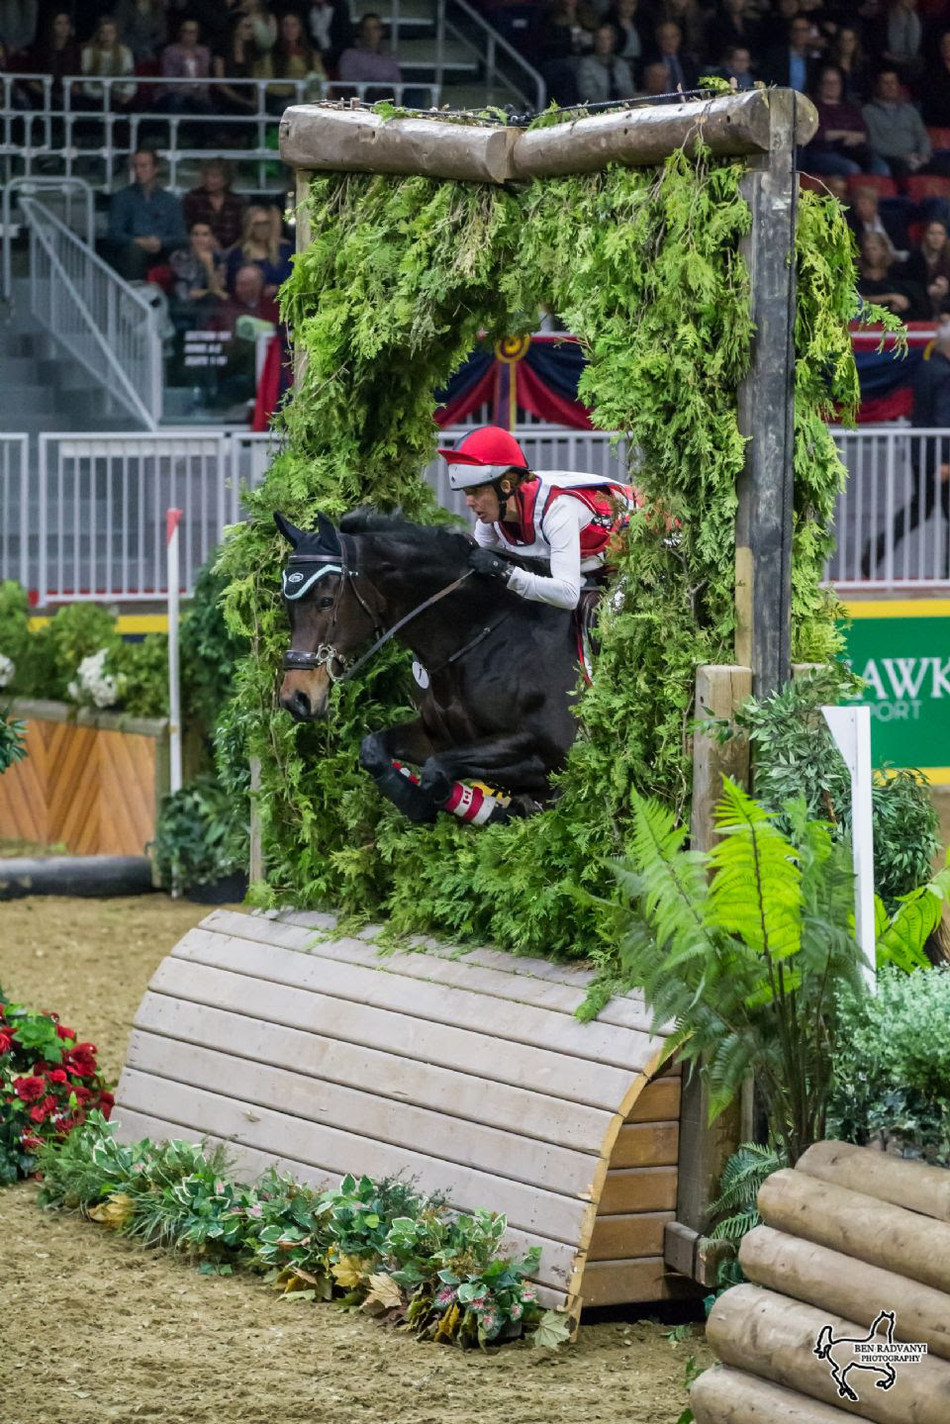 Canadian Olympian Selena O'Hanlon of Kingston, ON, will contest the $20,000 Horseware Indoor Eventing Challenge on November 3 and 4 at the Royal Horse Show, held as part of the 95th annual Royal Agricultural Winter Fair running from November 3 through 12 in Toronto, ON. Photo by Ben Radvanyi Photography (CNW Group/Royal Agricultural Winter Fair)